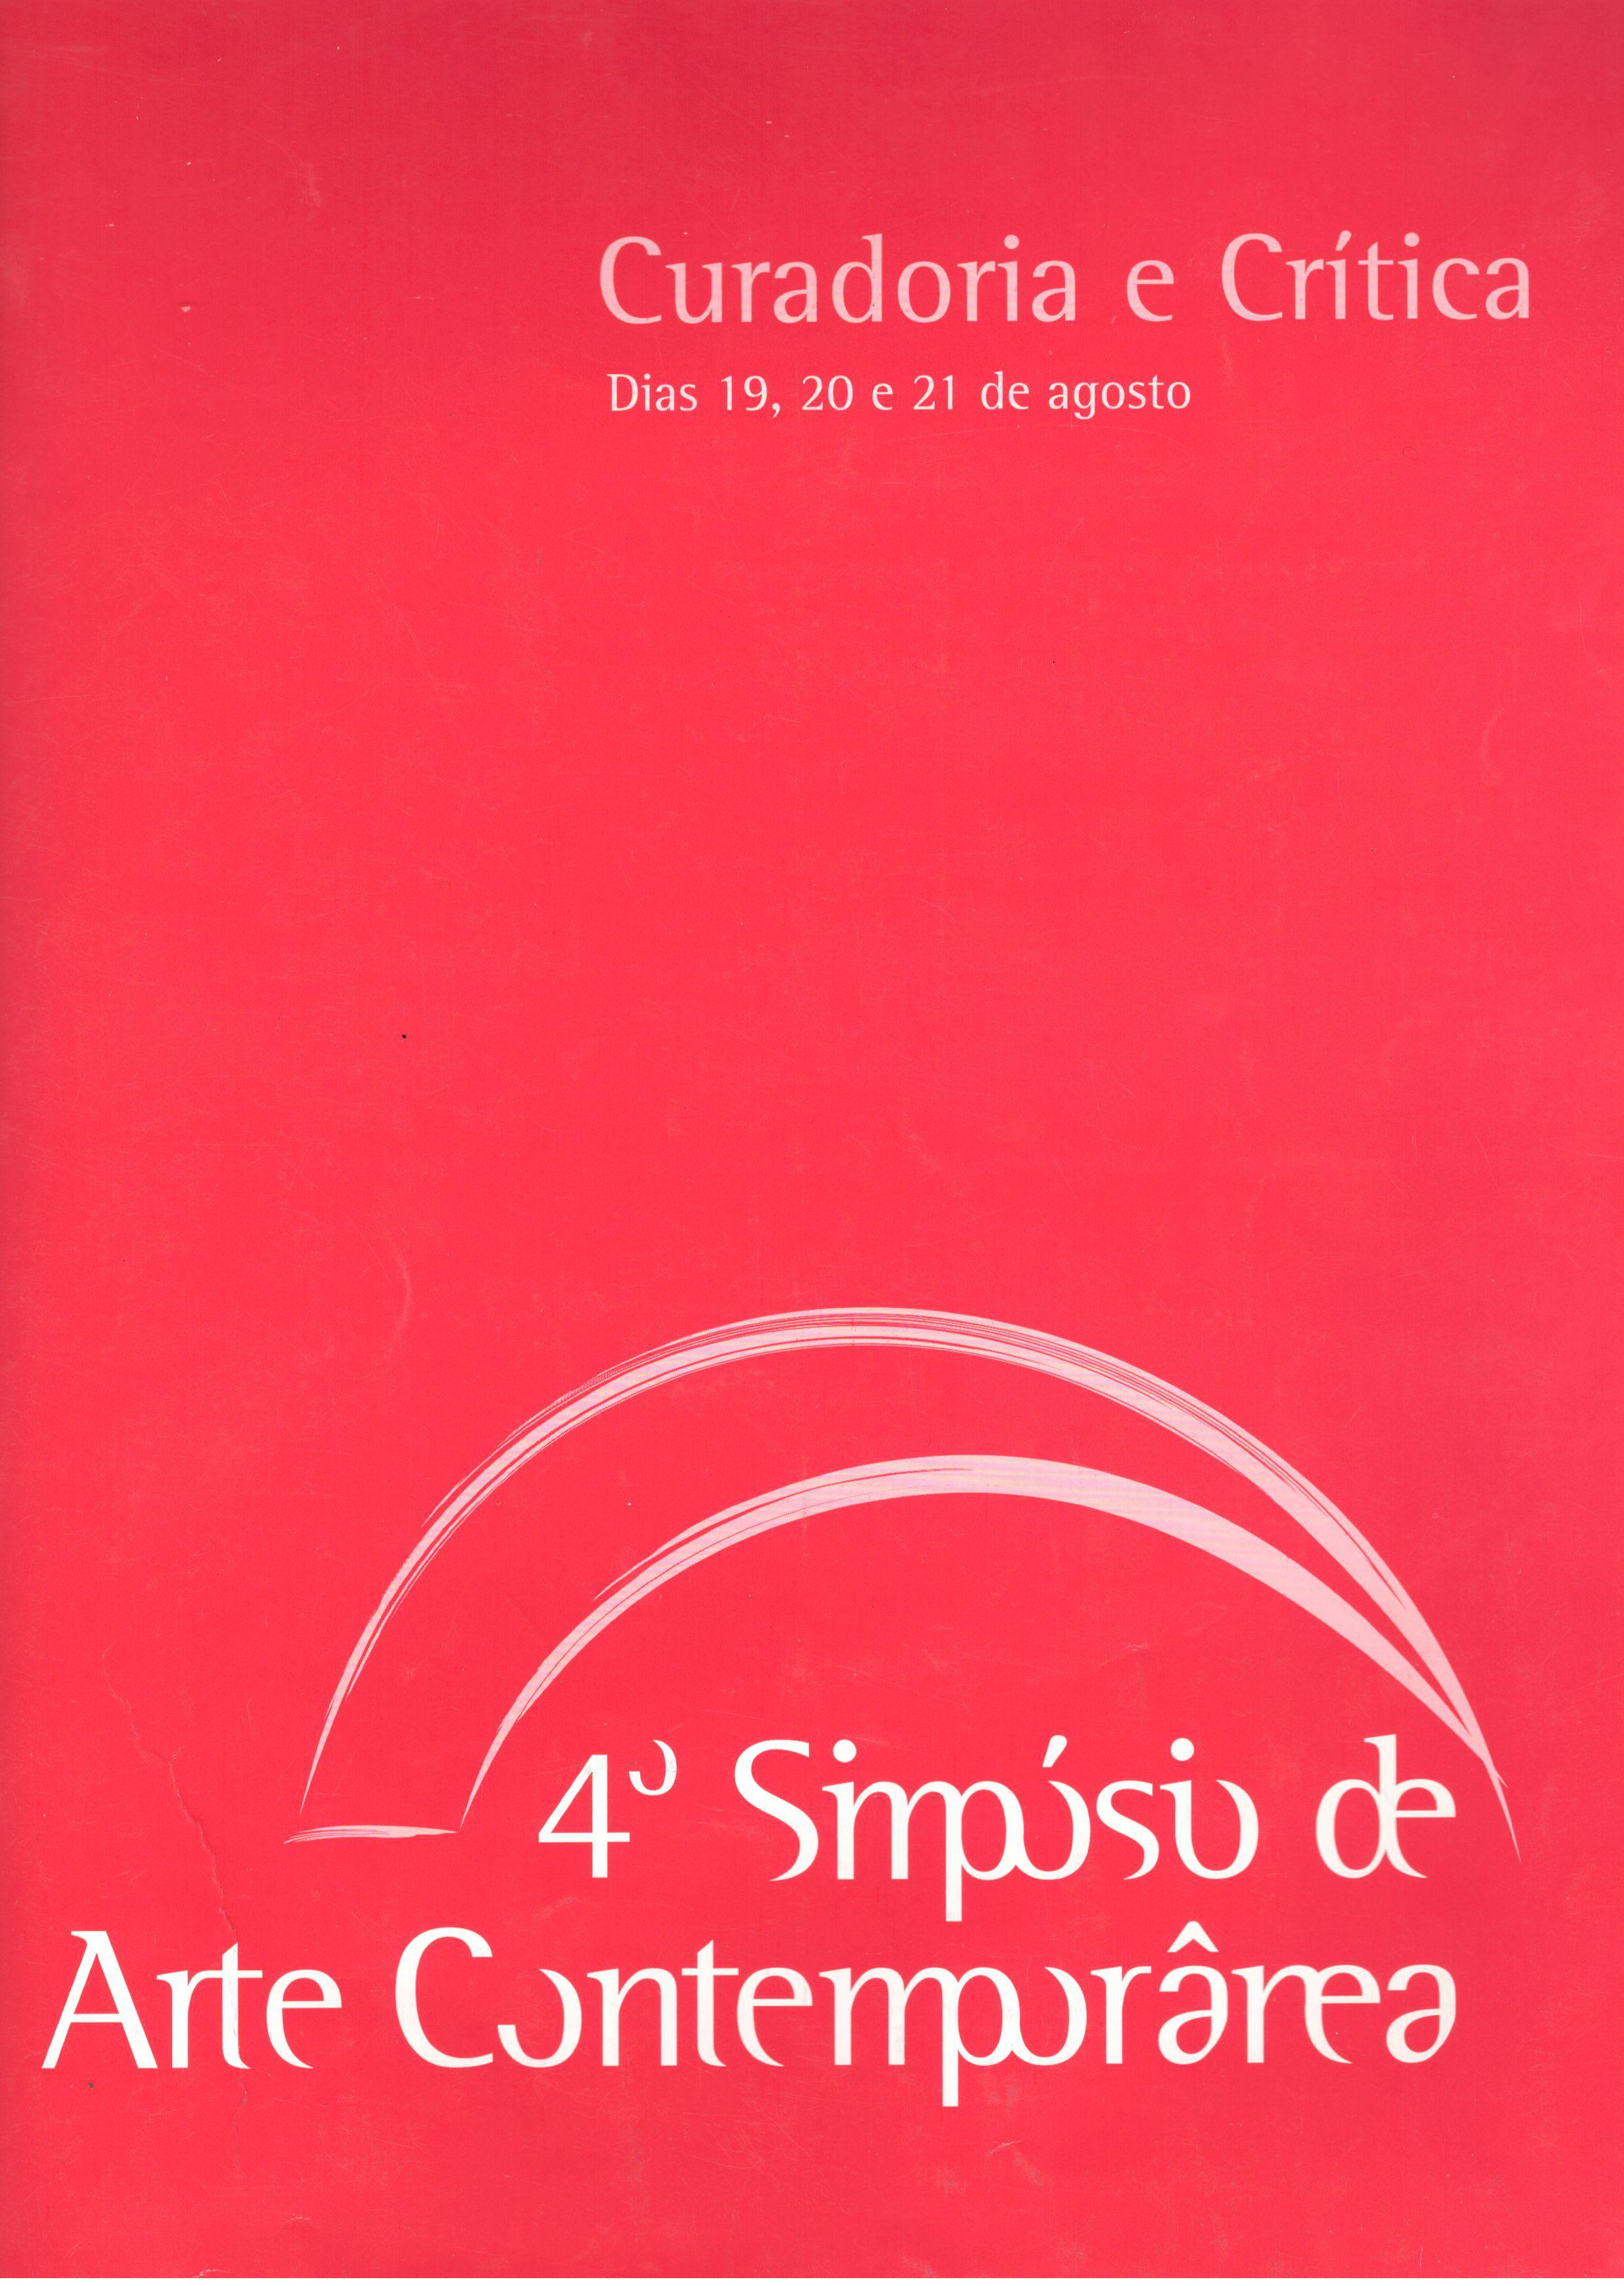 4 simposio de arte contemporanea 2009 1 flayer